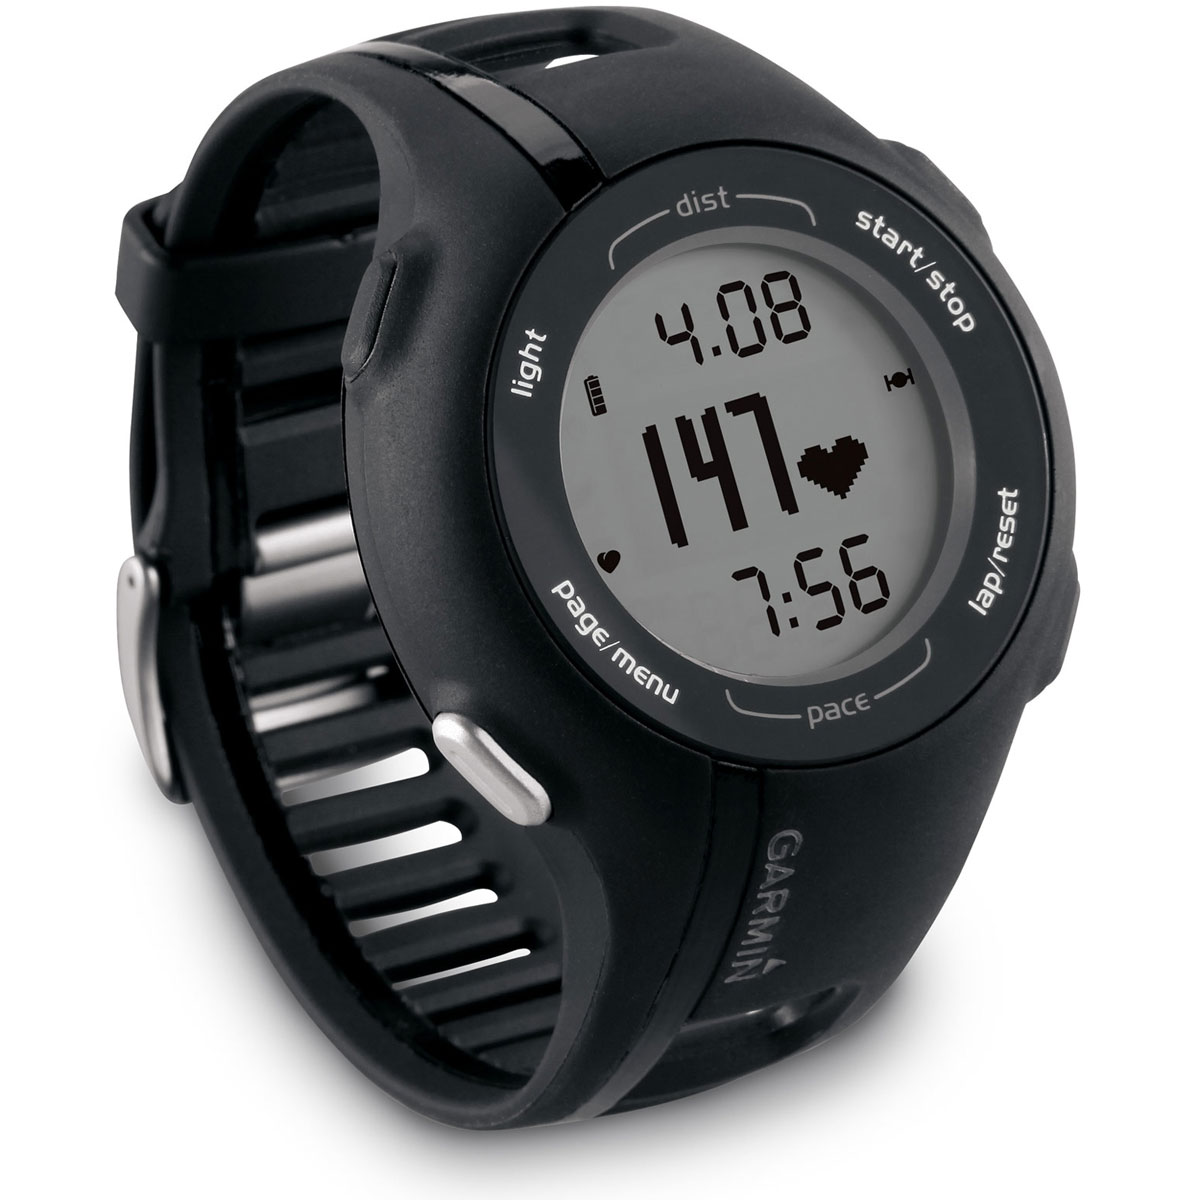 garmin forerunner 210 montre running garmin sur ldlc. Black Bedroom Furniture Sets. Home Design Ideas